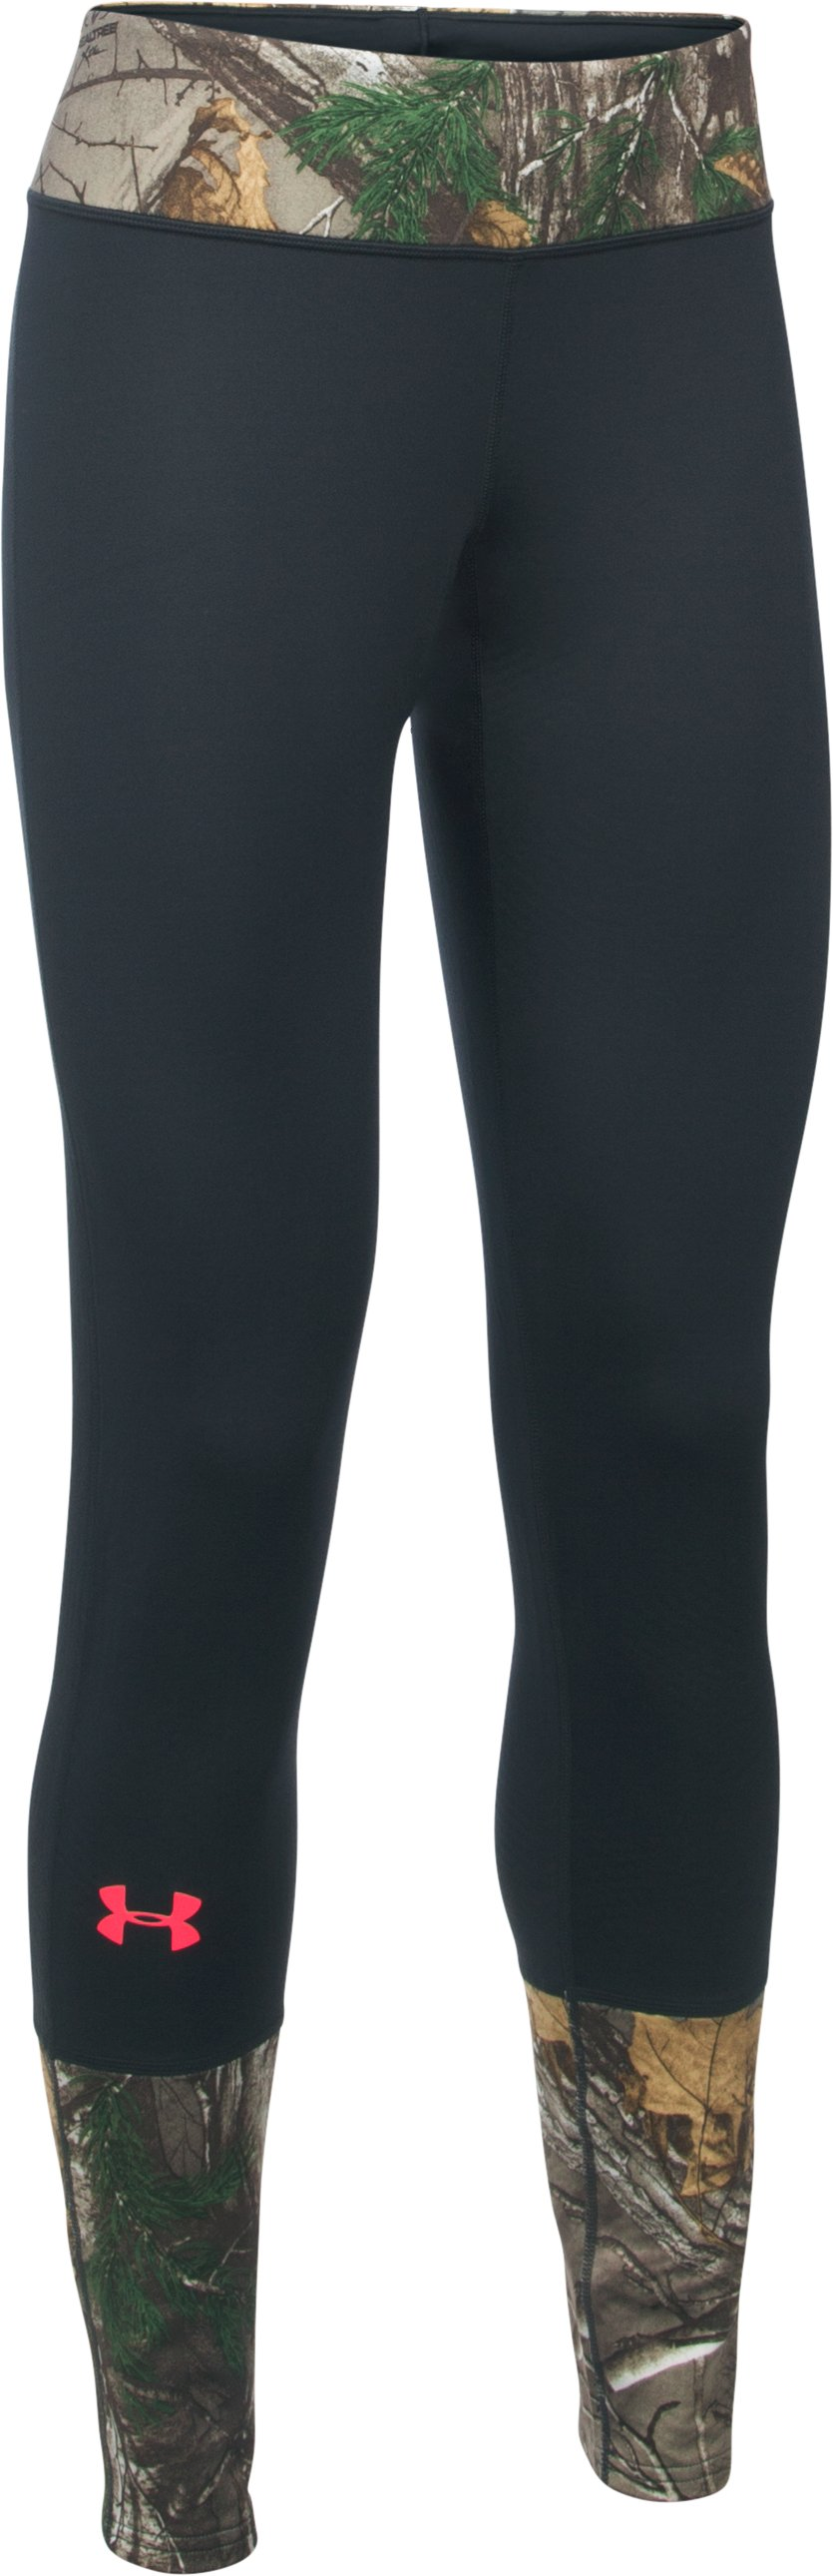 Women's UA Tevo Leggings, REALTREE AP-XTRA, undefined